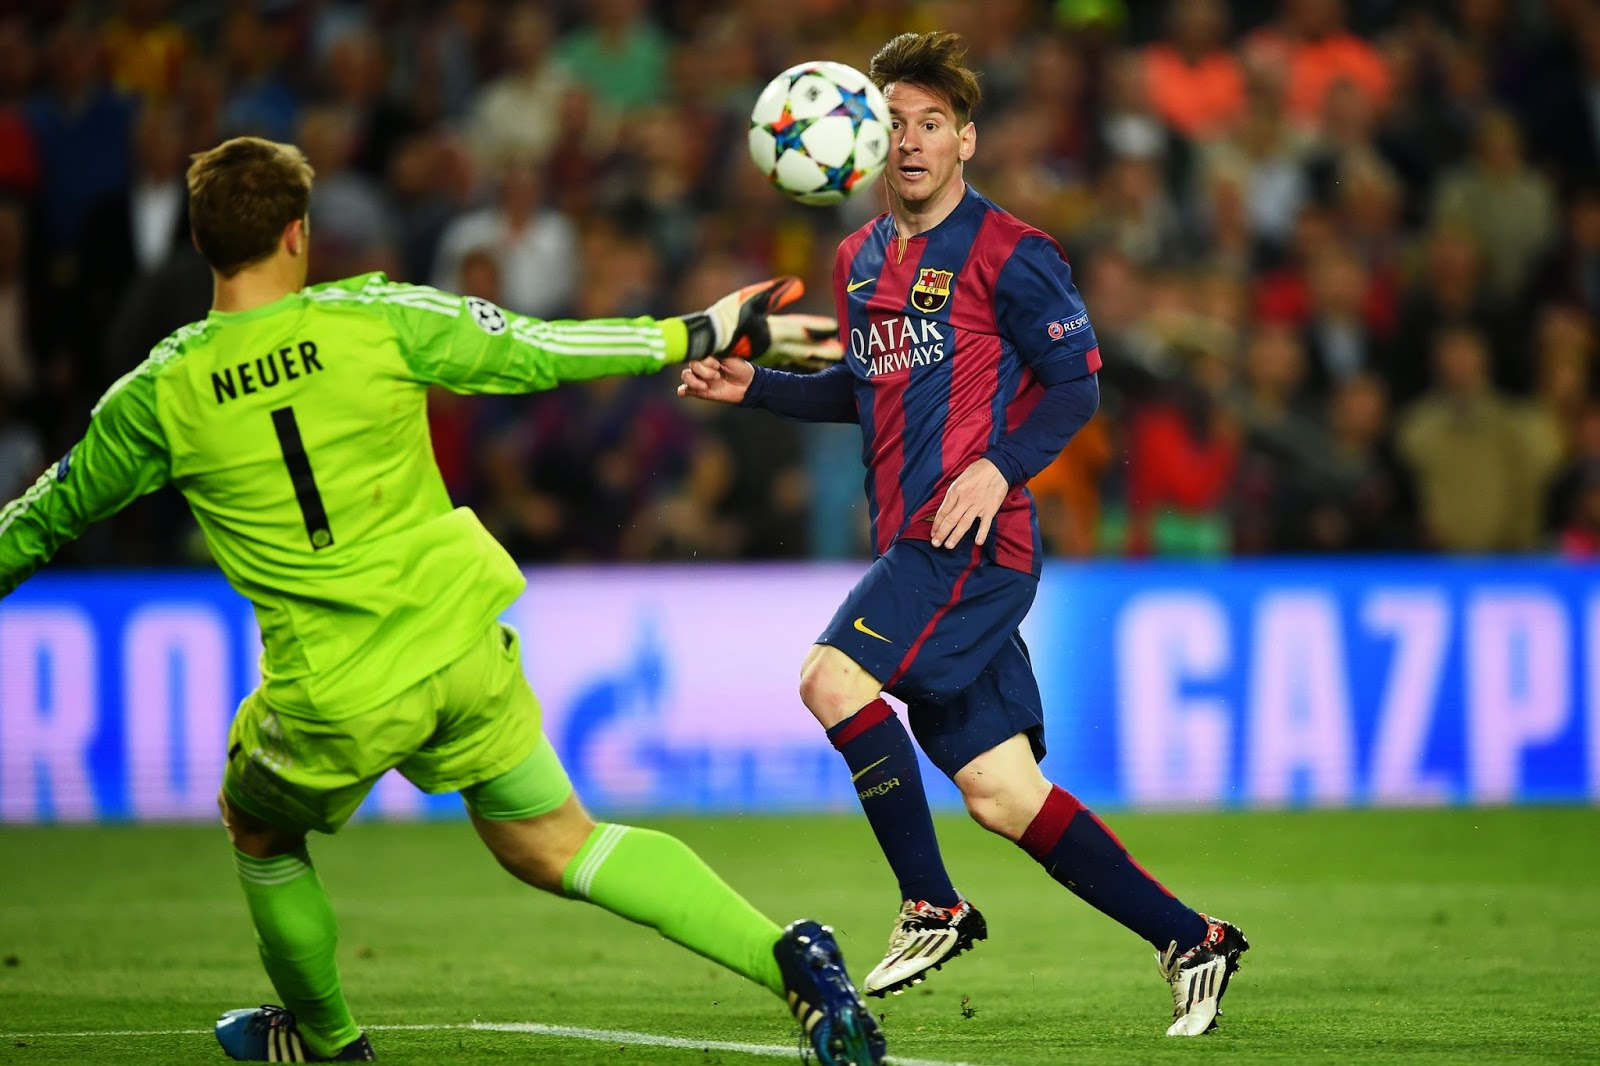 Goal Cantik Messi vs Bayern Munich yang menjadikan Messi Man of The Match